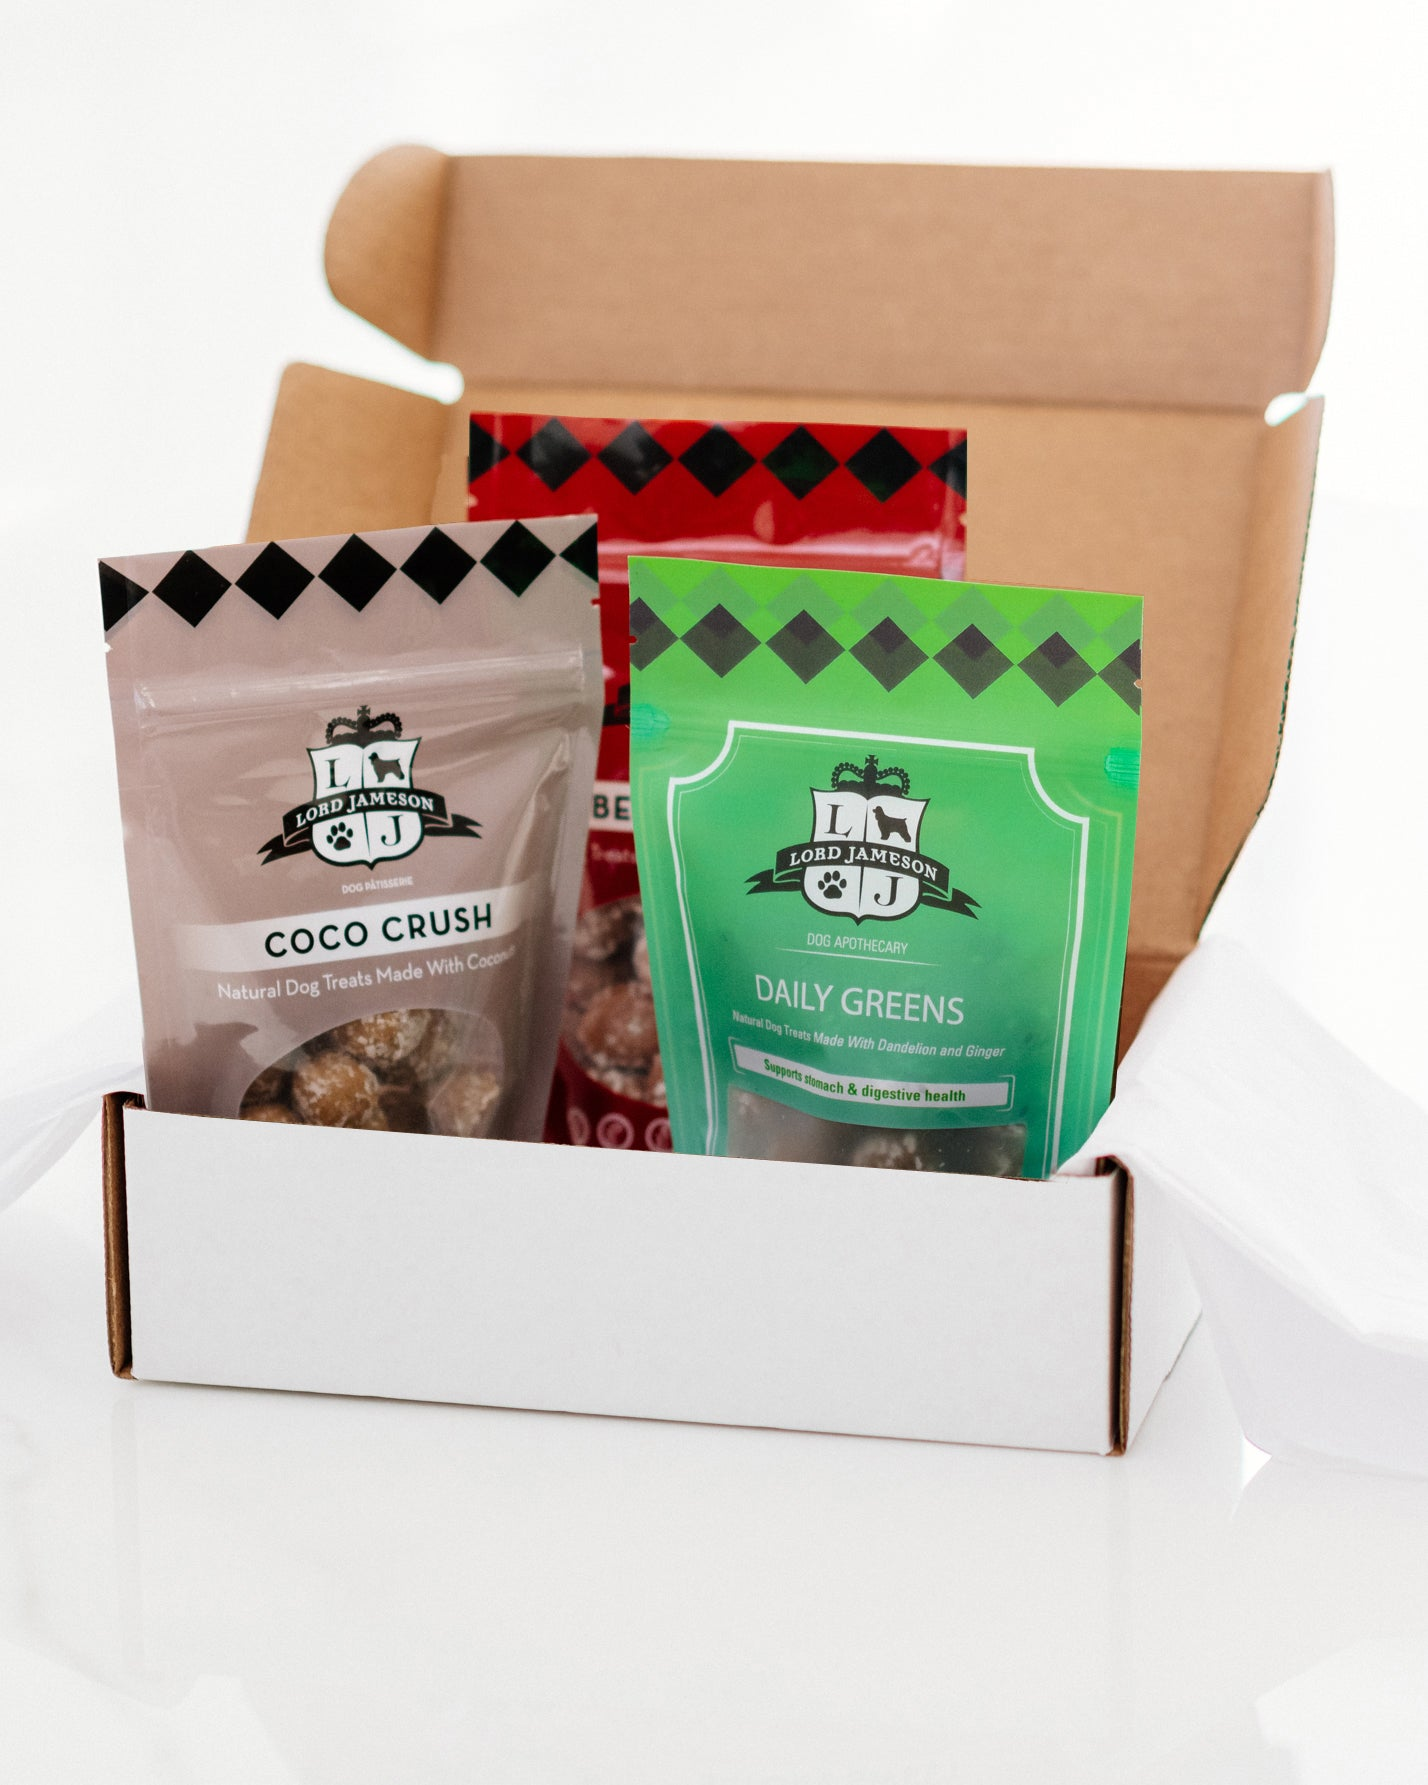 Build An Organic Dog Treat Box | 3-Pack - Lord Jameson Organic Dog Treats